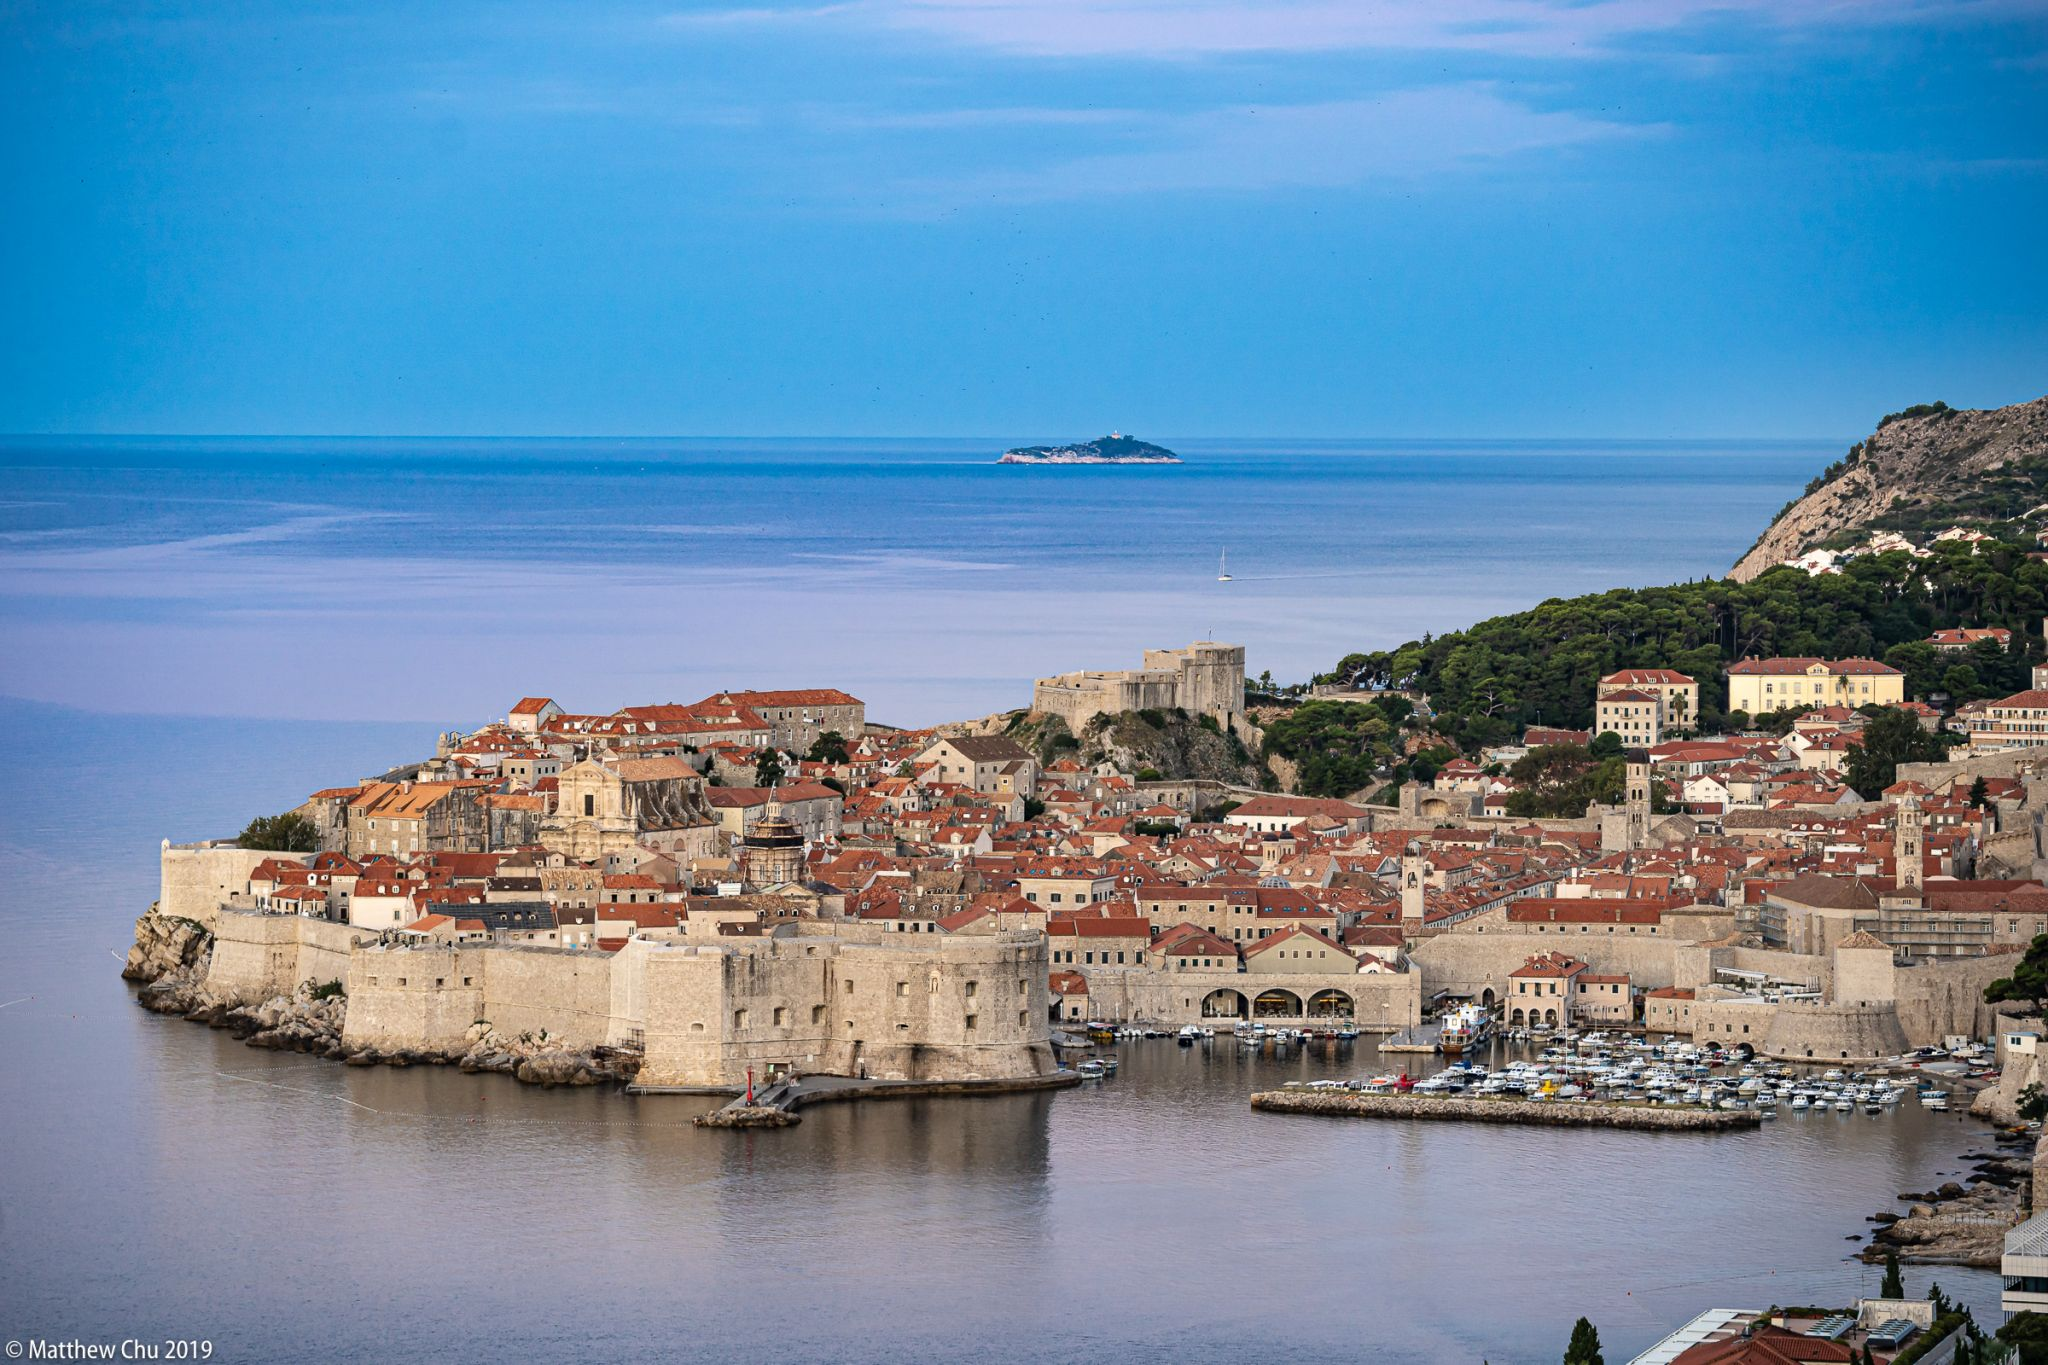 Dubrovnik Old Town from a distance, Croatia